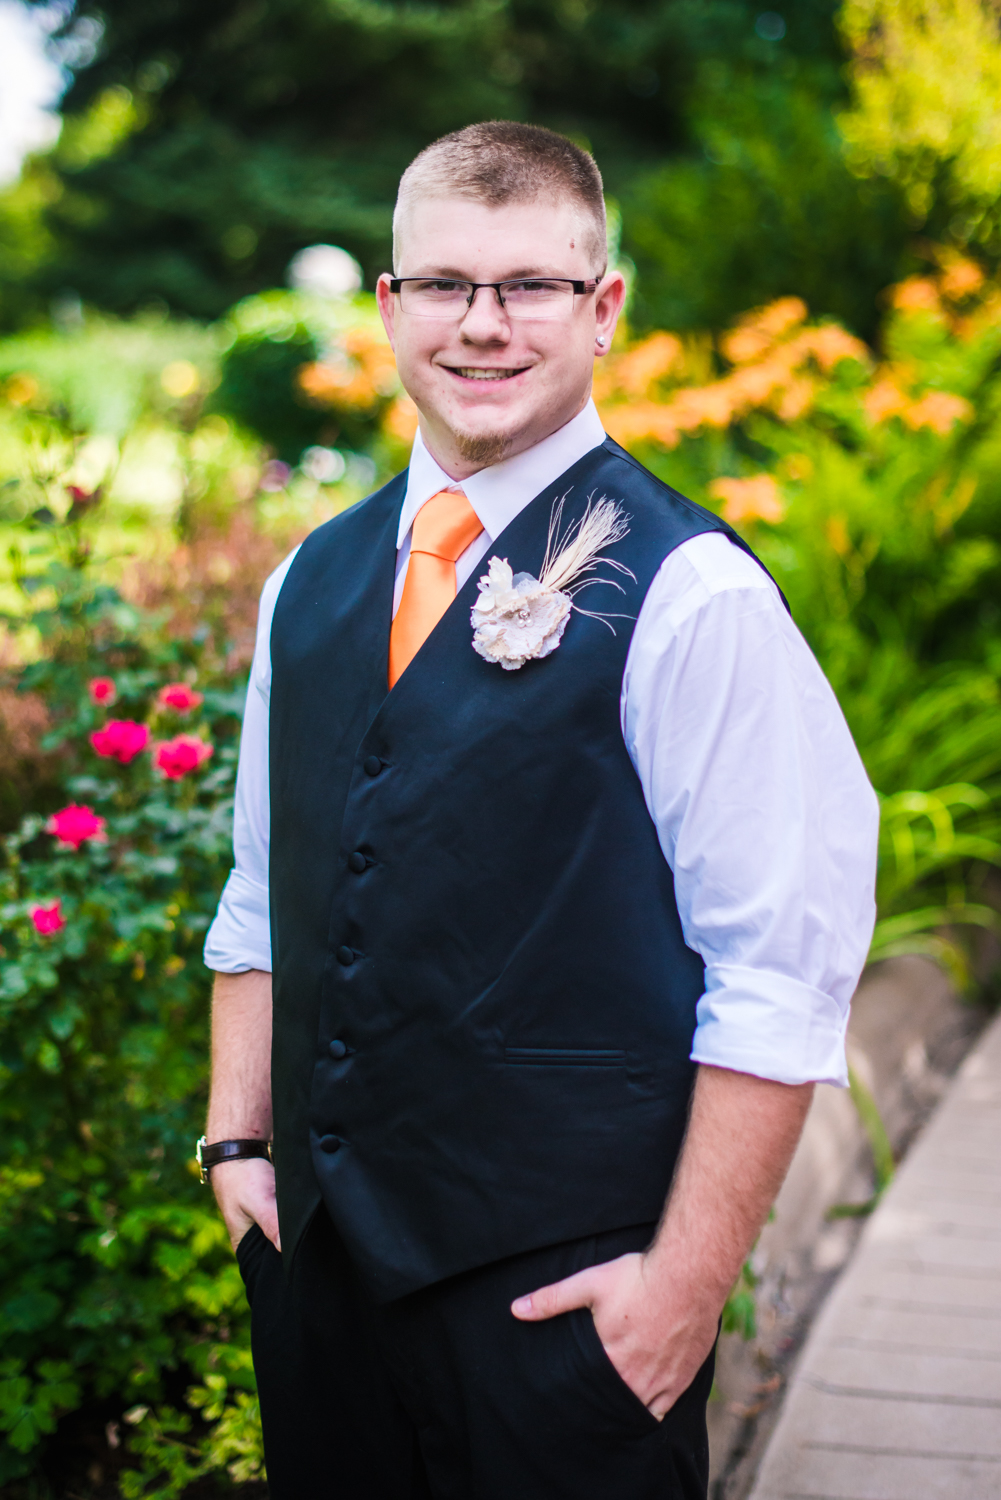 The Groom.Photographed by JMGant Photography.